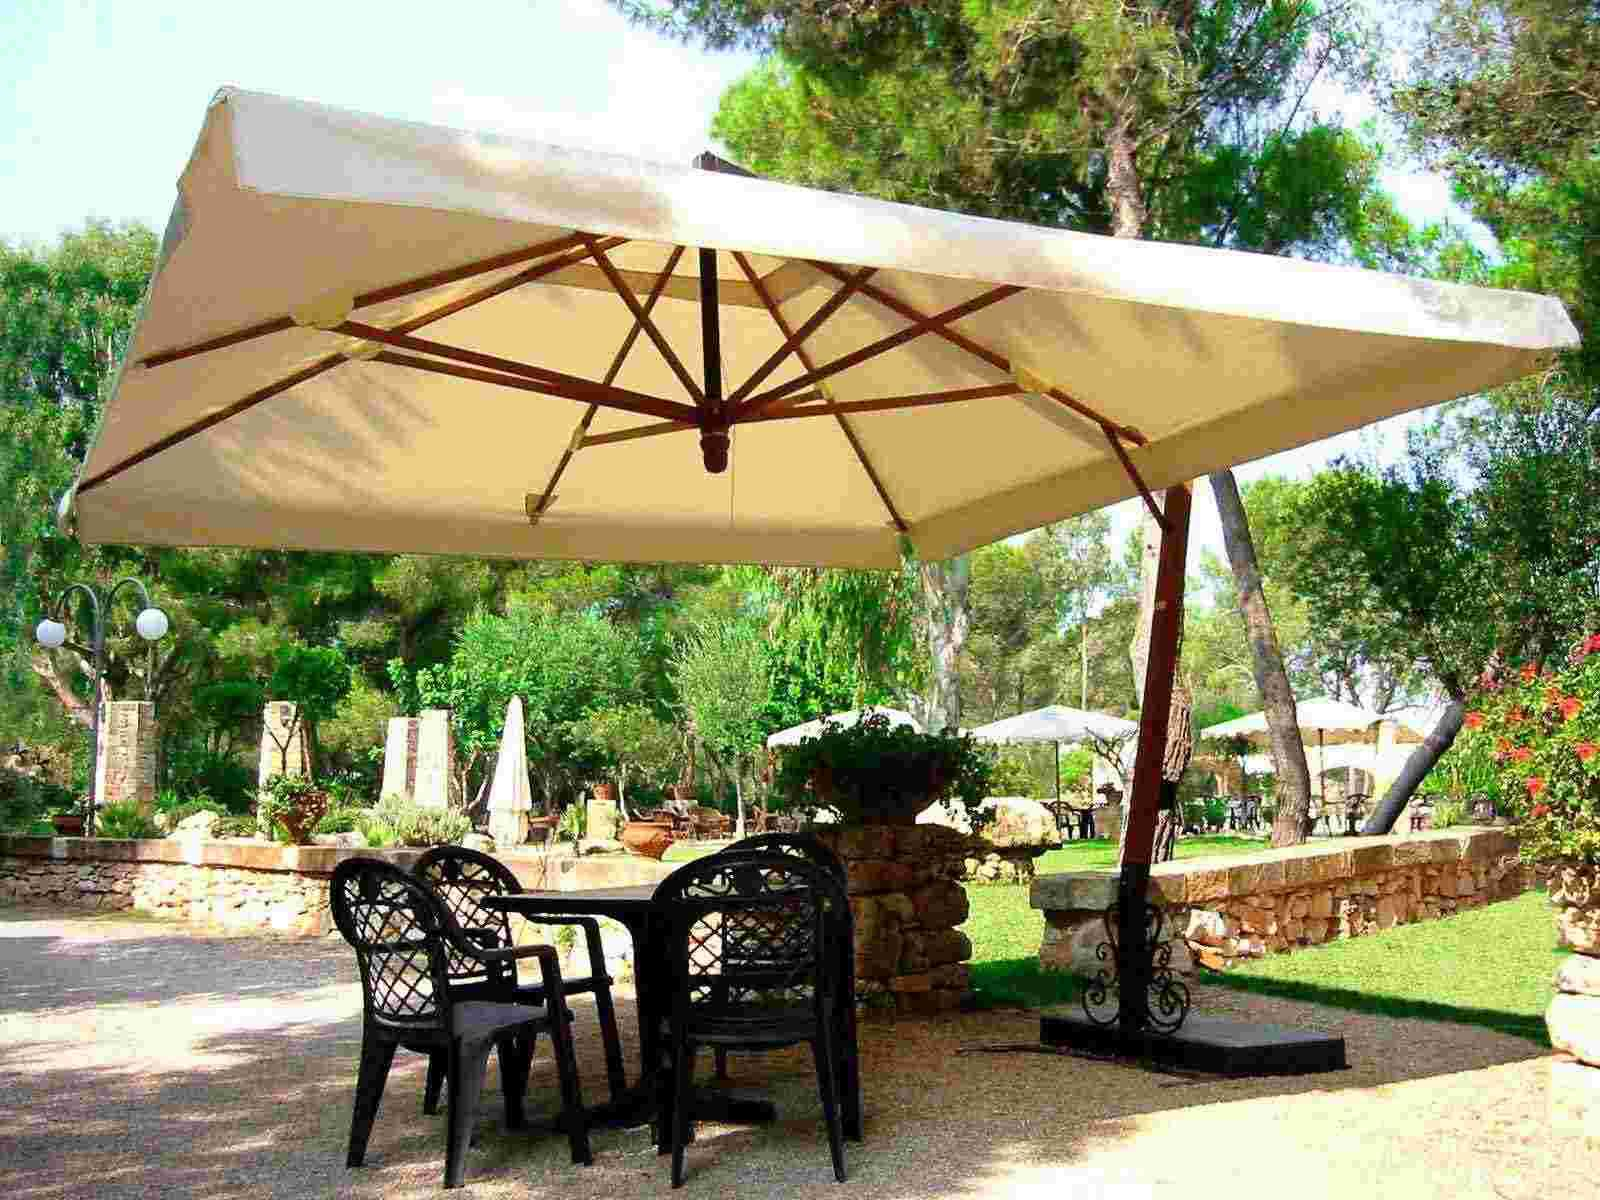 Patio Ideas Large Cantilever Patio Umbrella With Black Patio pertaining to size 1600 X 1200